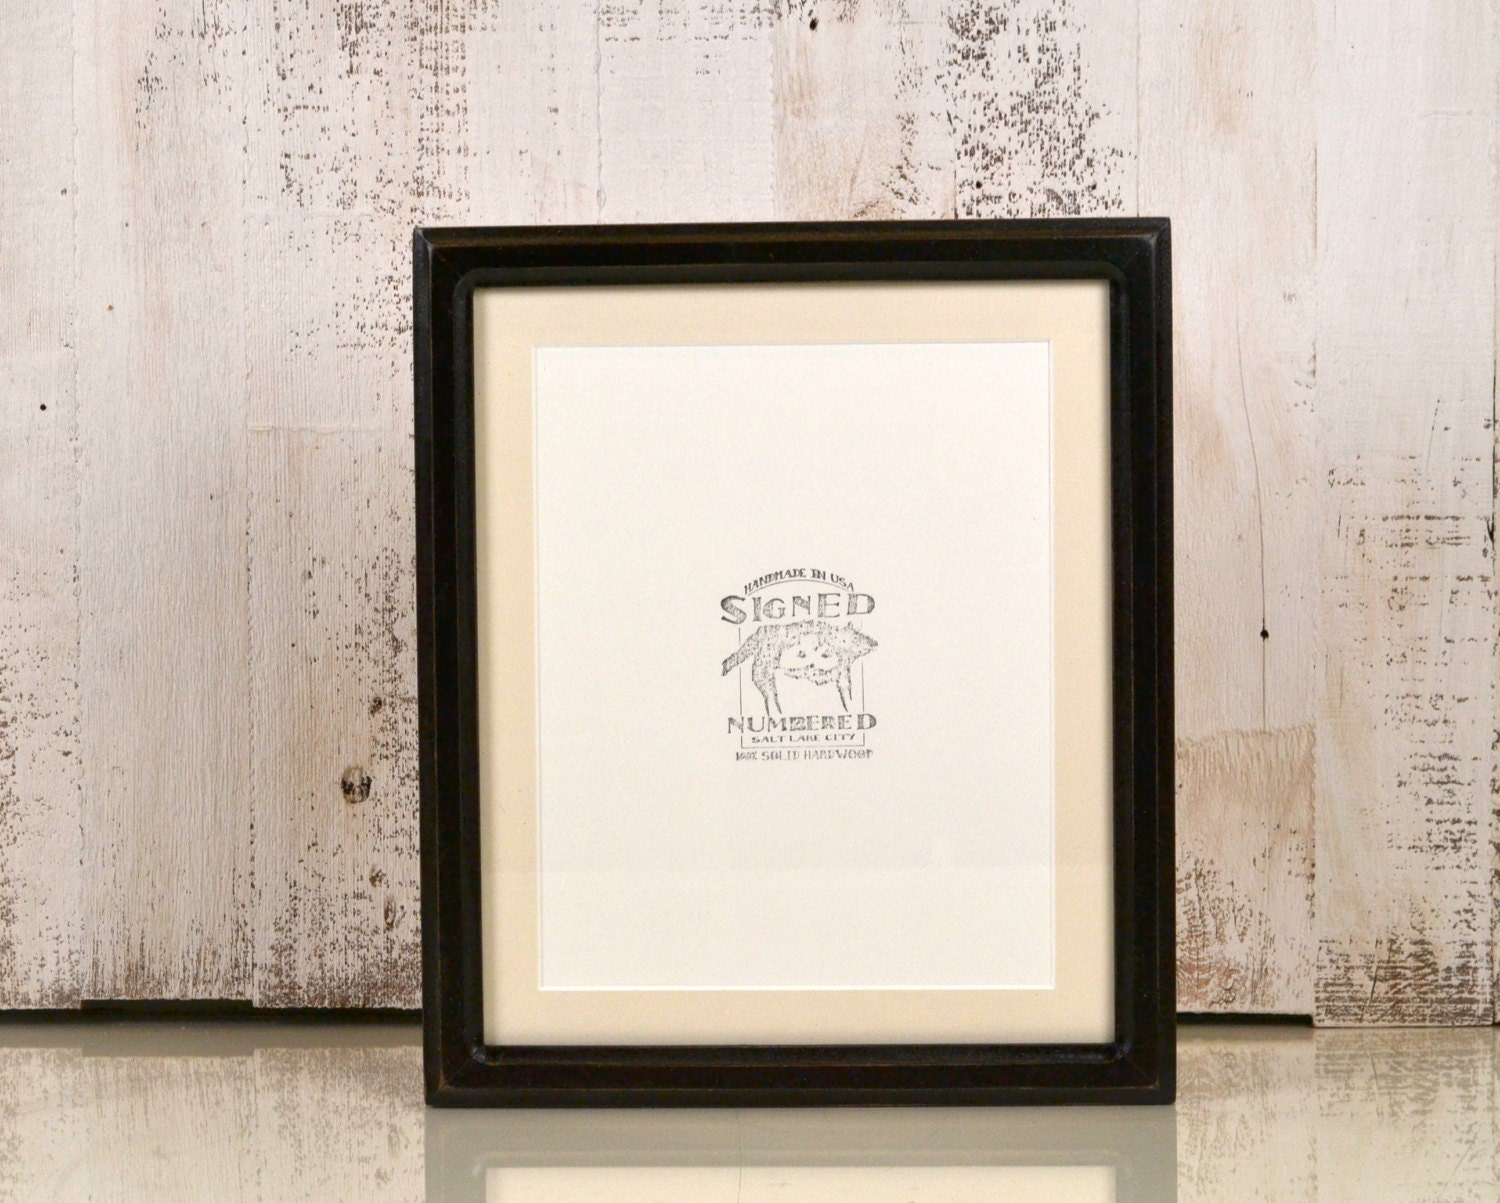 10x12 Picture Frame In Double Cove Style Vintage Black